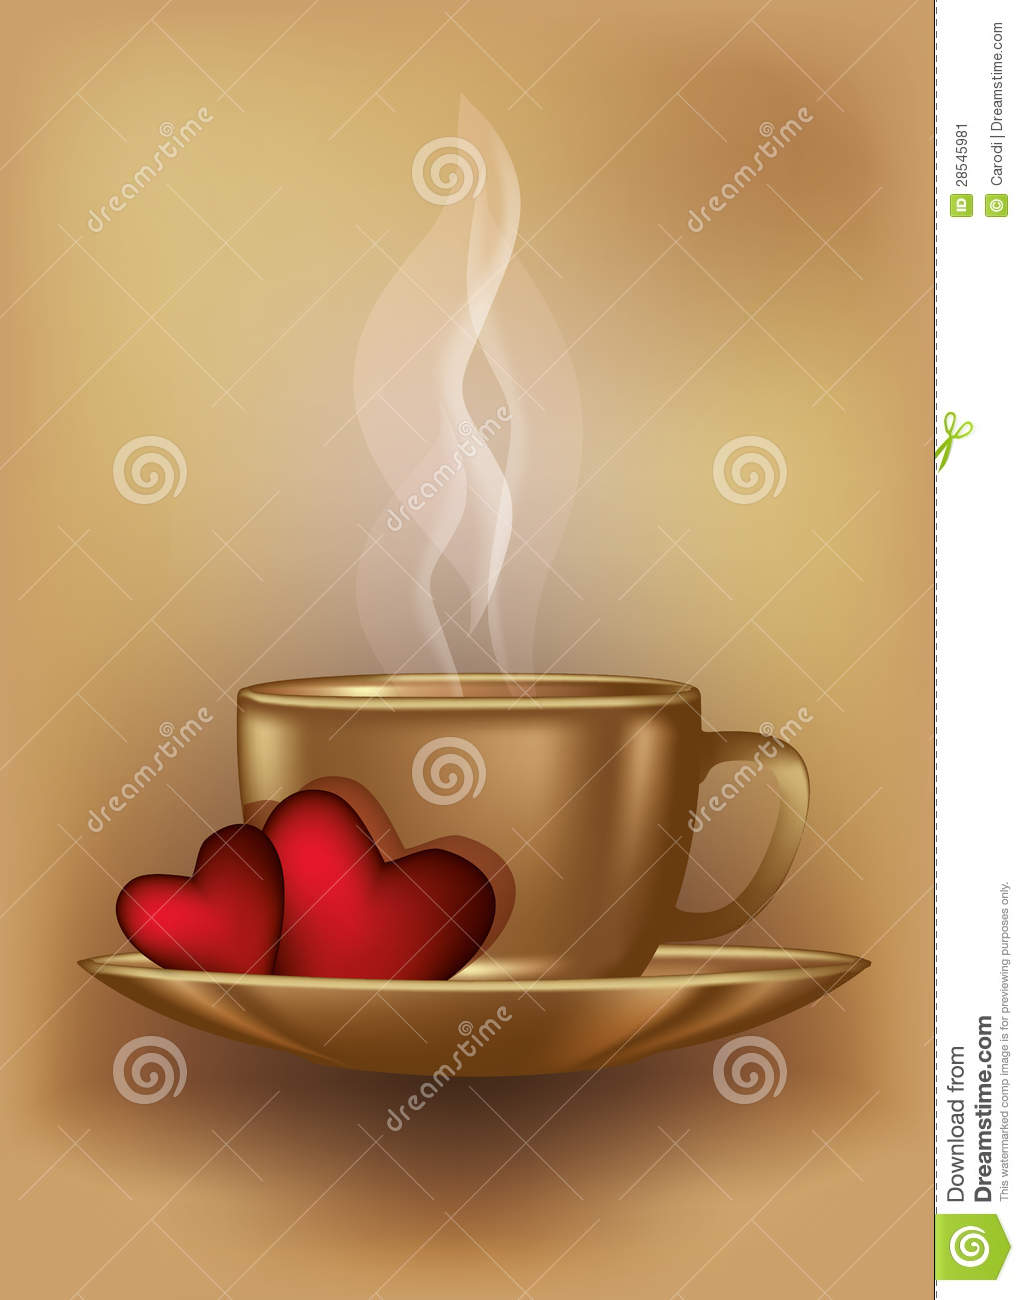 Valentines day coffee card stock vector. Illustration of ...